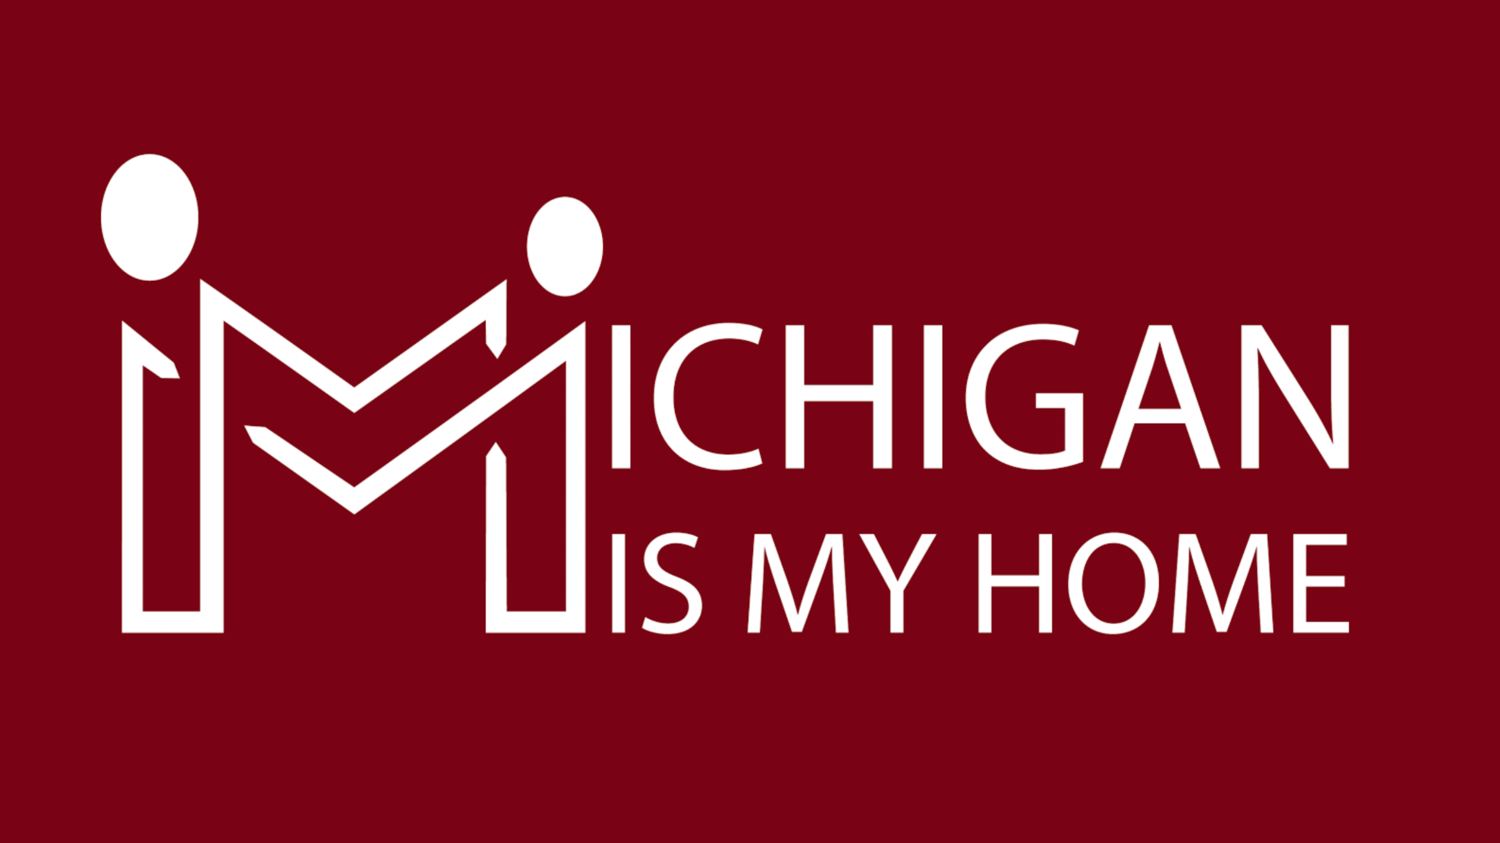 Michigan Is My Home